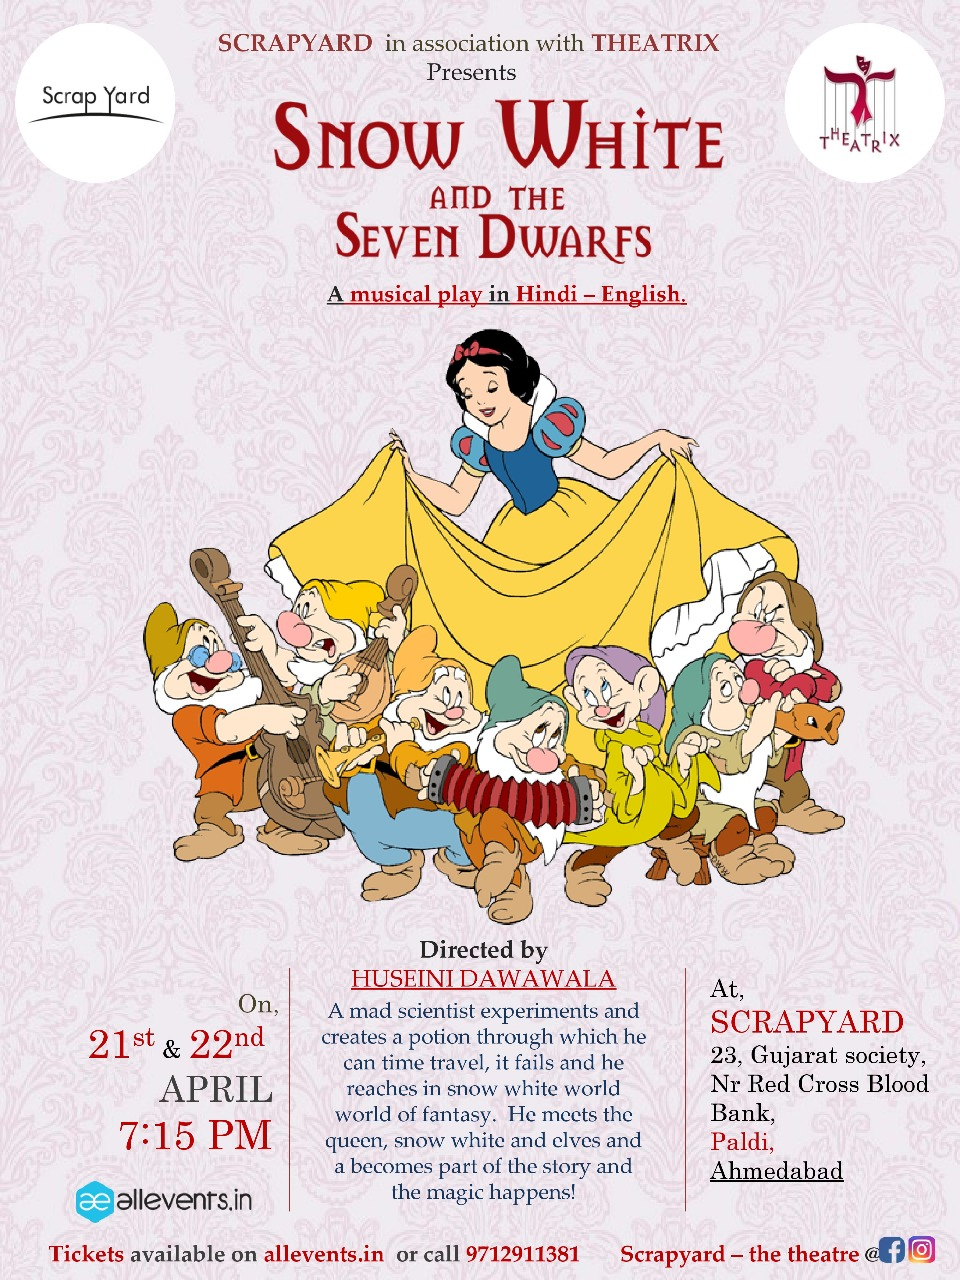 https://creativeyatra.com/wp-content/uploads/2018/04/Snow-White-Seven-Dwarfs.jpeg